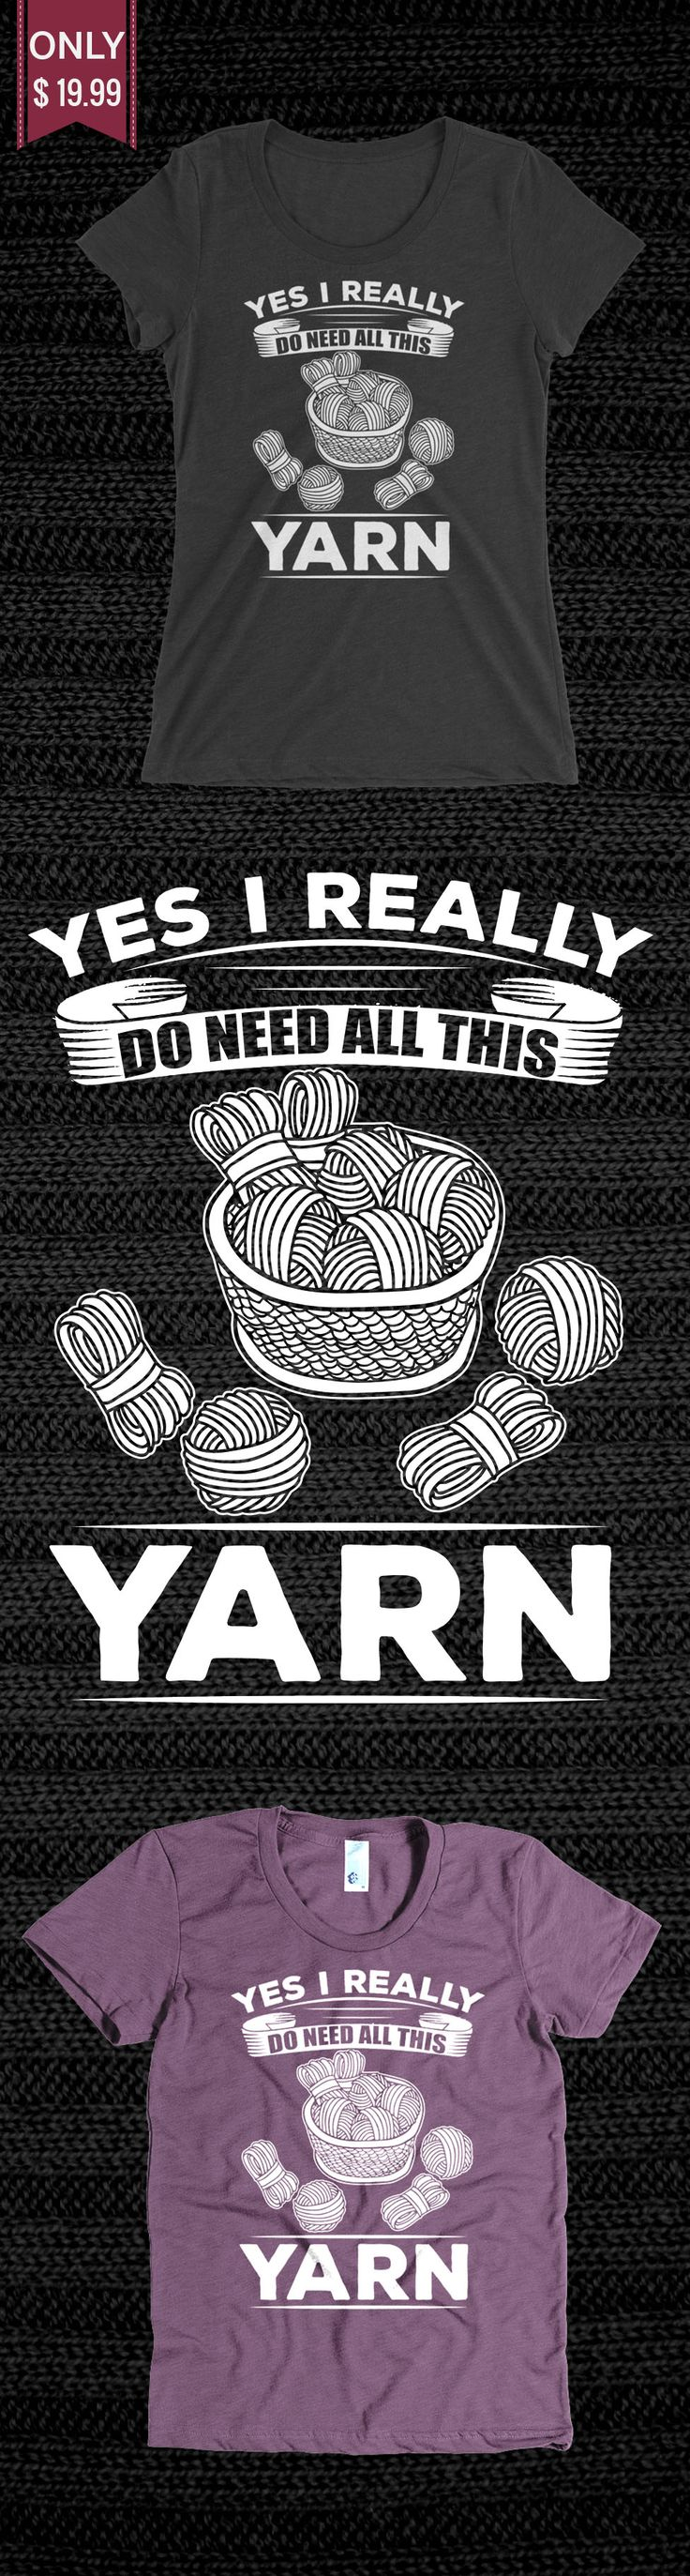 Funny Knitting Shirt Yarn - Check out this Limited Edition T-Shirt! You will not find anywhere else. Available in other colors too. Not sold in stores! Grab yours or gift it to a friend, you will both love it